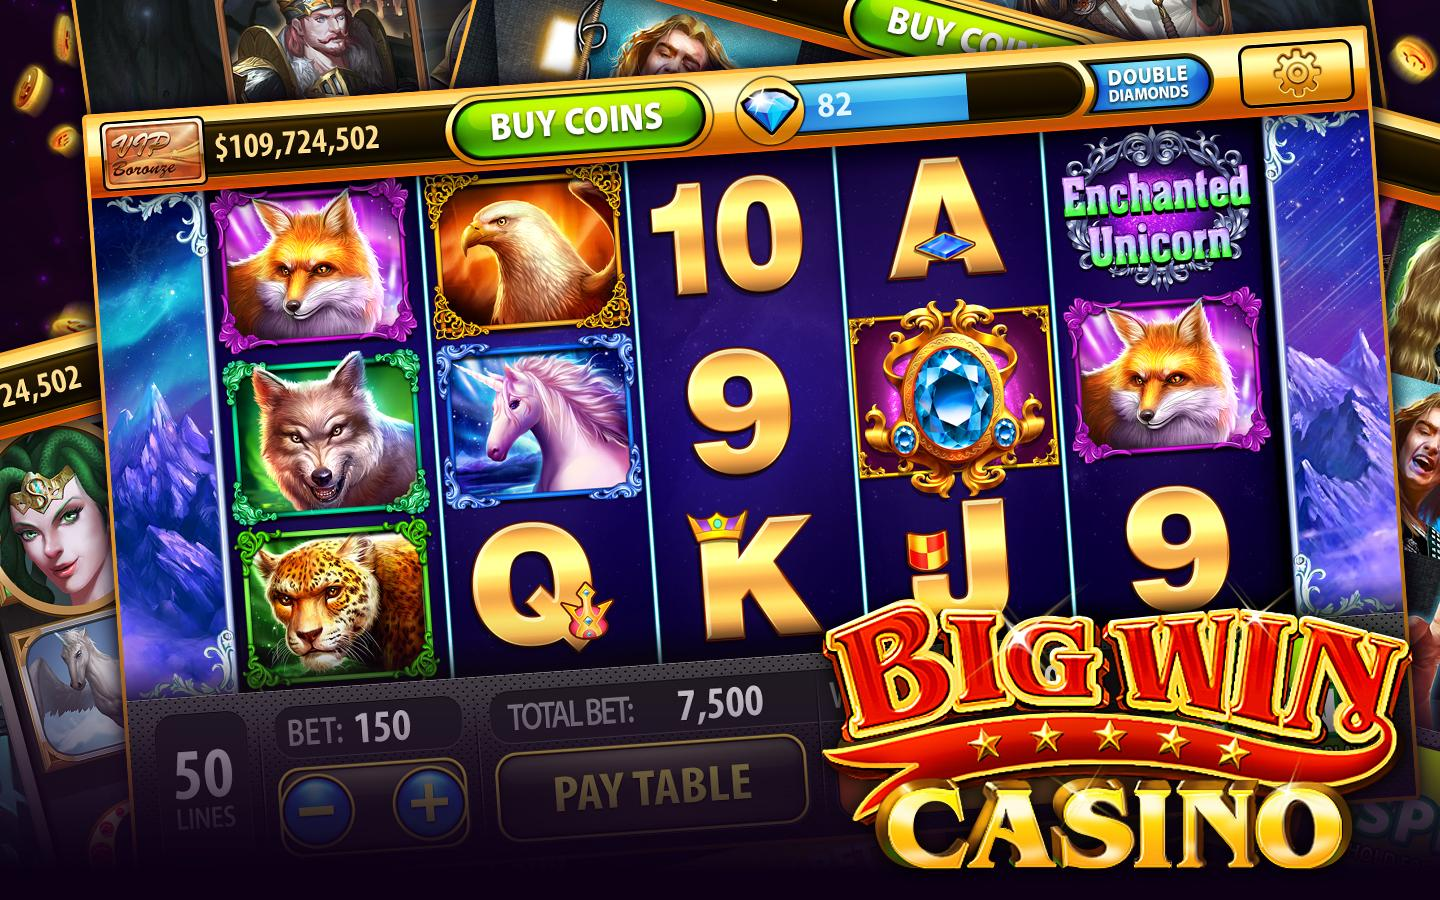 Casino games | Euro Palace Casino Blog - Part 41